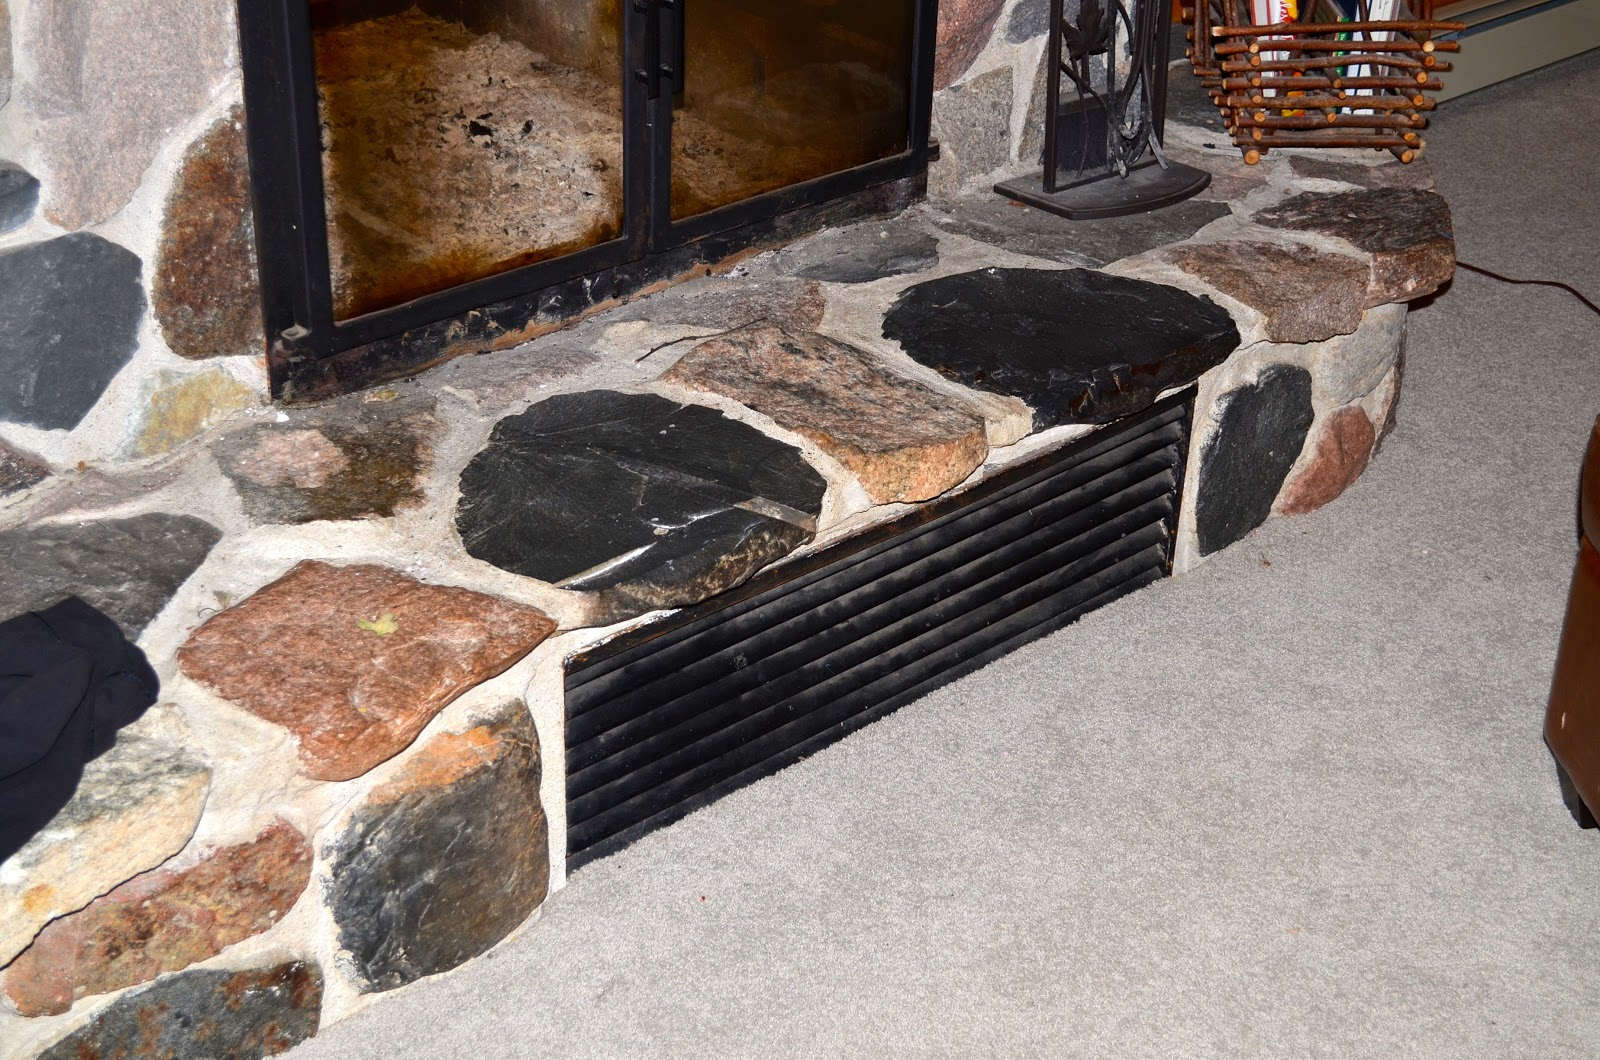 Artful Panoply Fireplace Vent Cover To Keep Out Draft